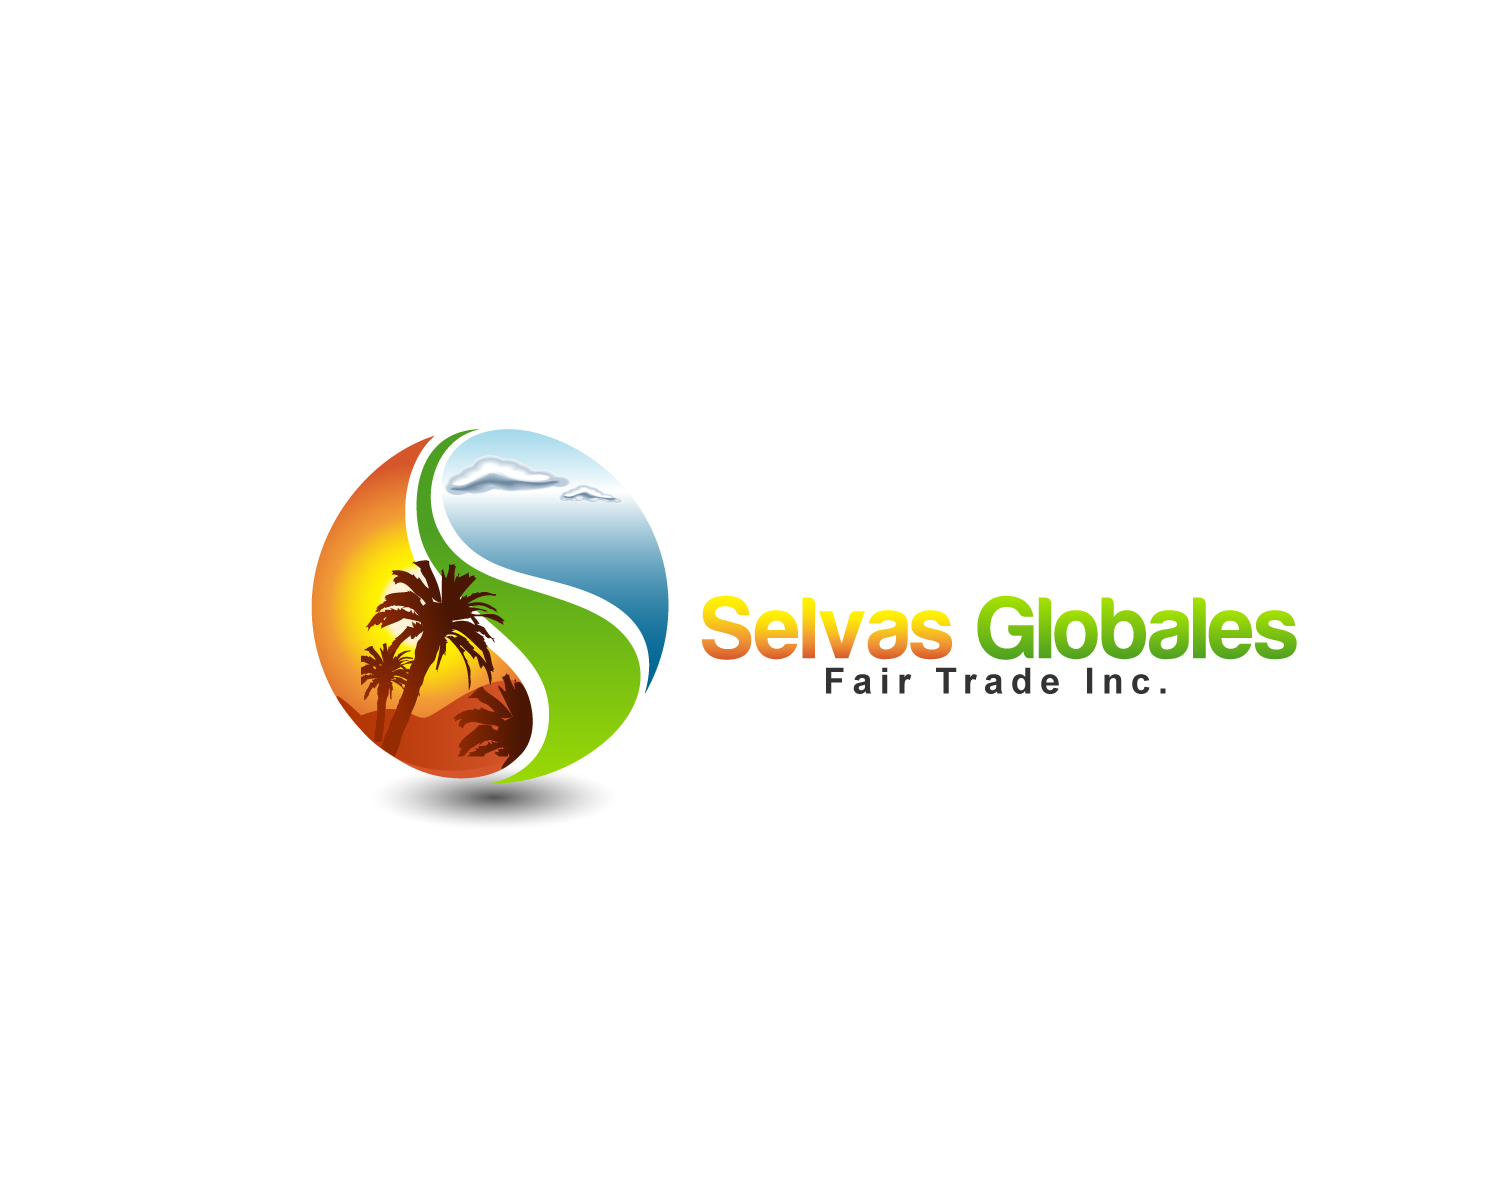 Logo Design by Jagdeep Singh - Entry No. 96 in the Logo Design Contest Captivating Logo Design for Selvas Globales Fair Trade Inc..